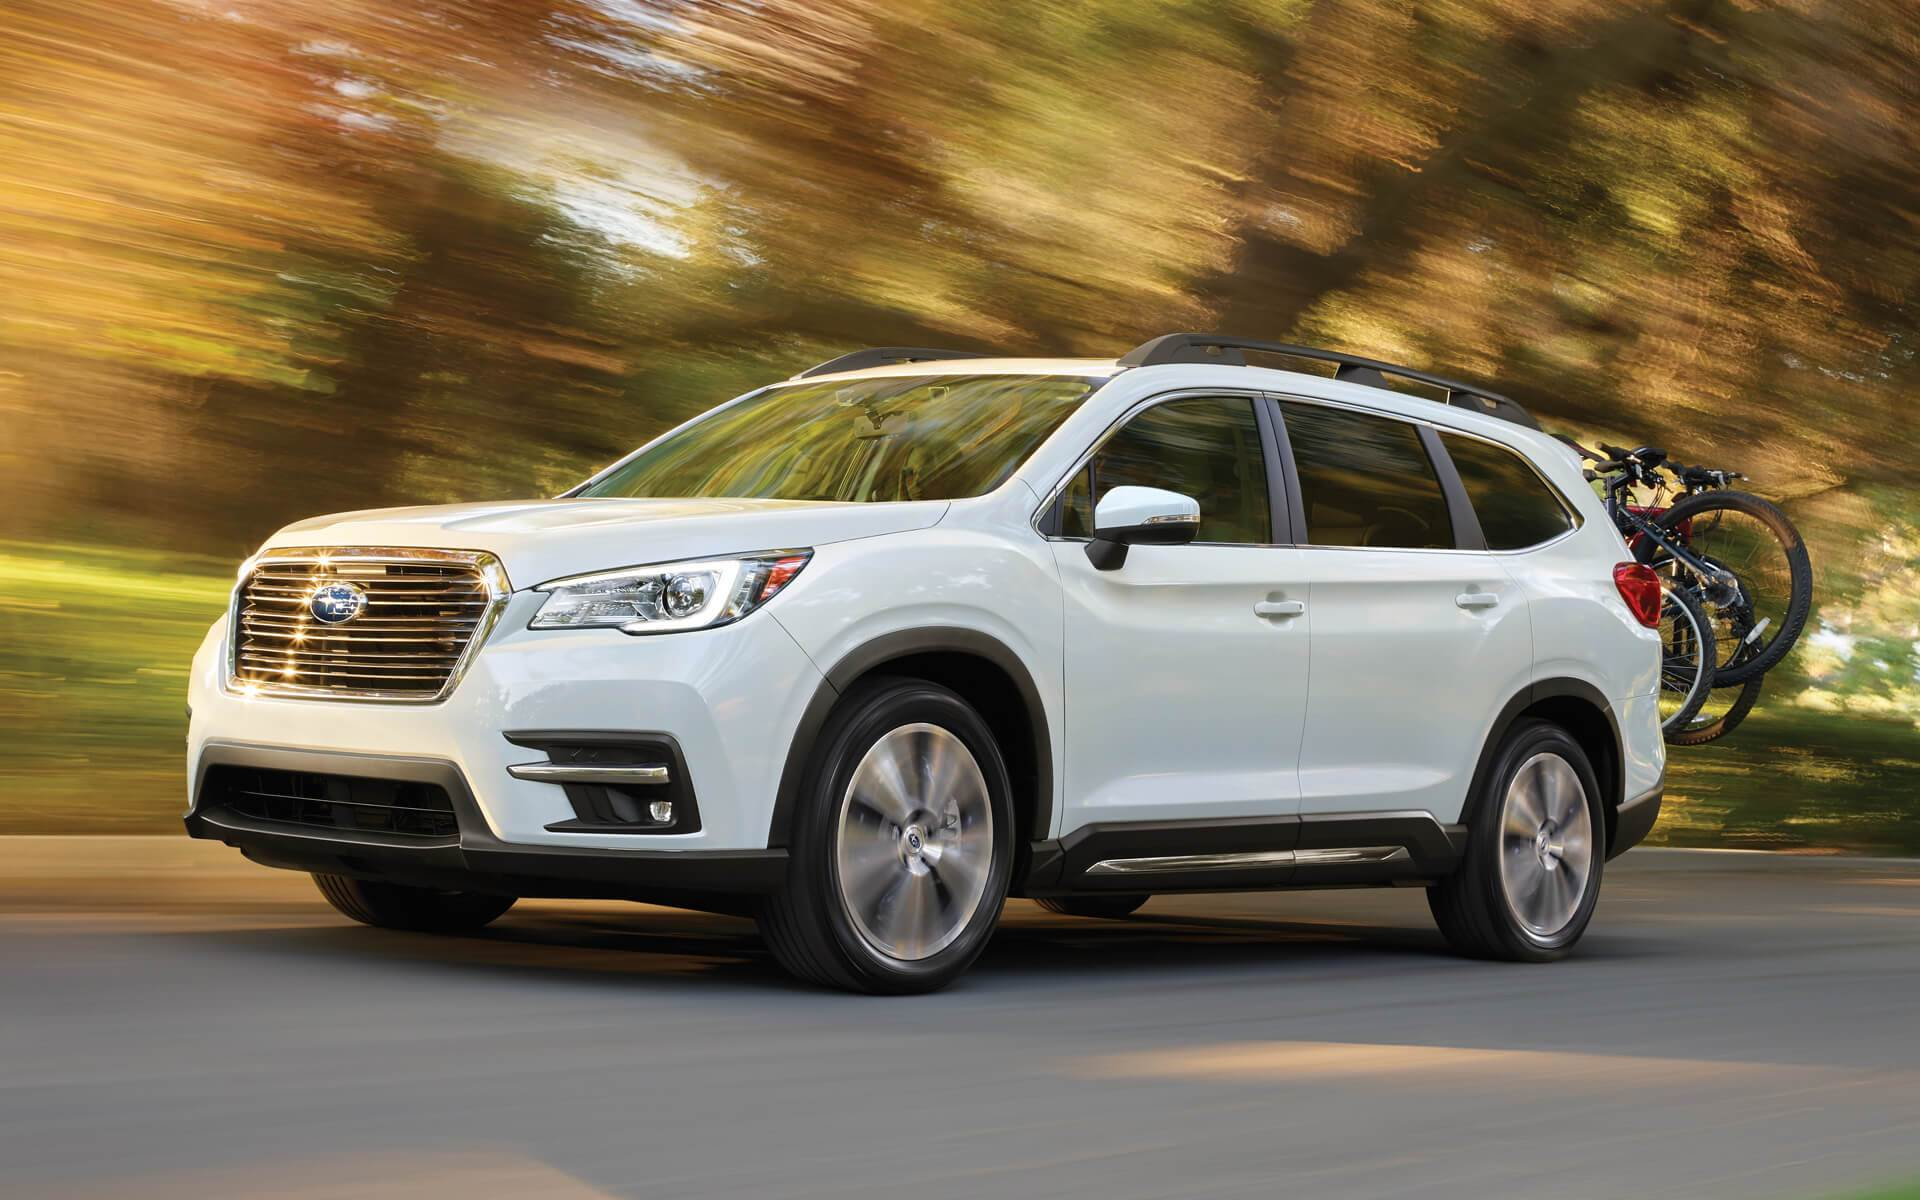 2019 Subaru Ascent Overview - The News Wheel